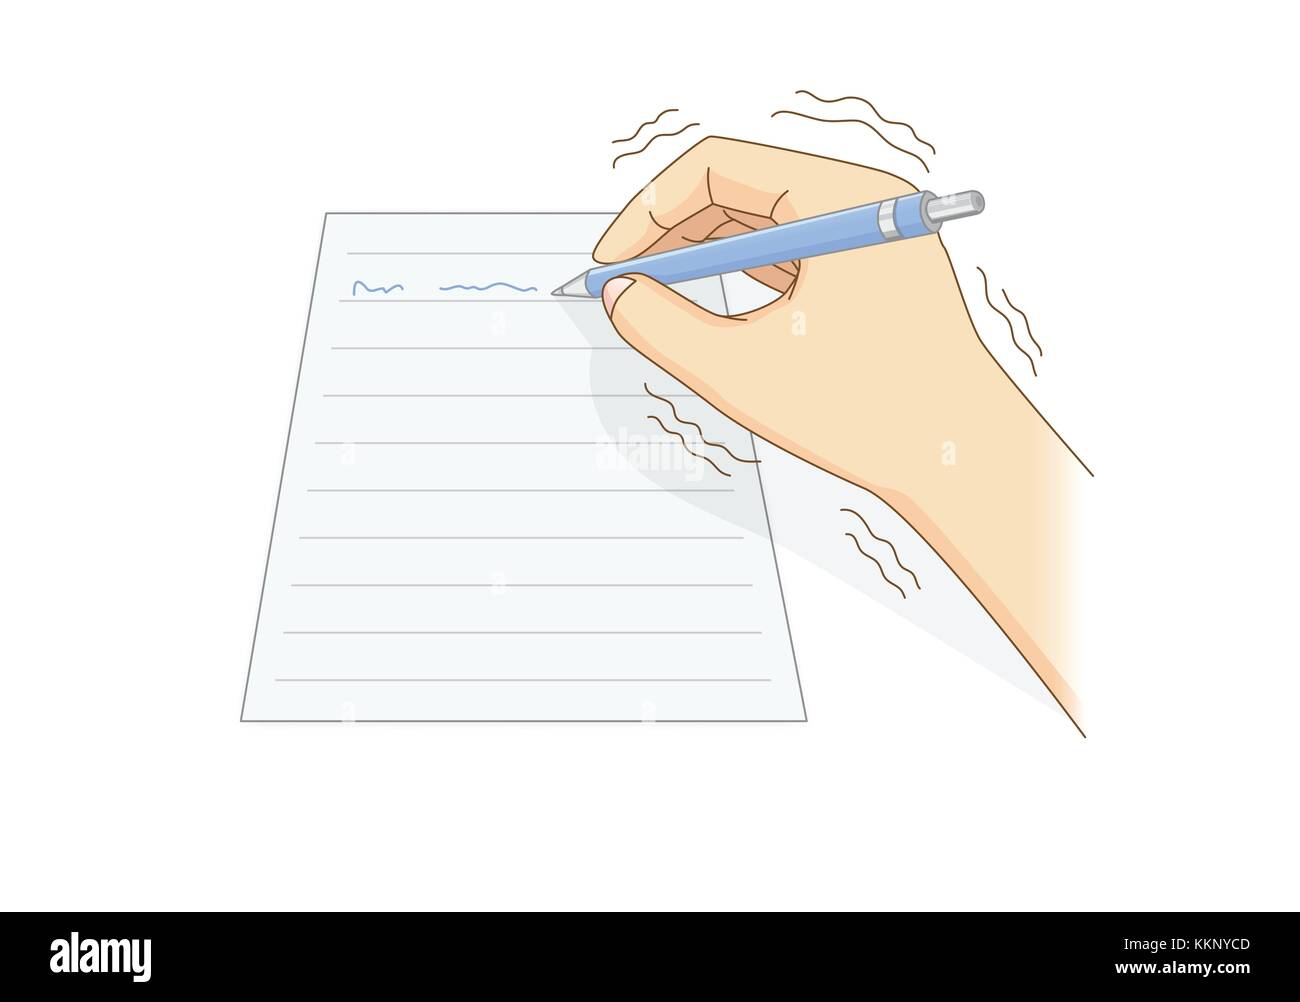 Human hand have tremor symptom while writing with a pen. - Stock Image